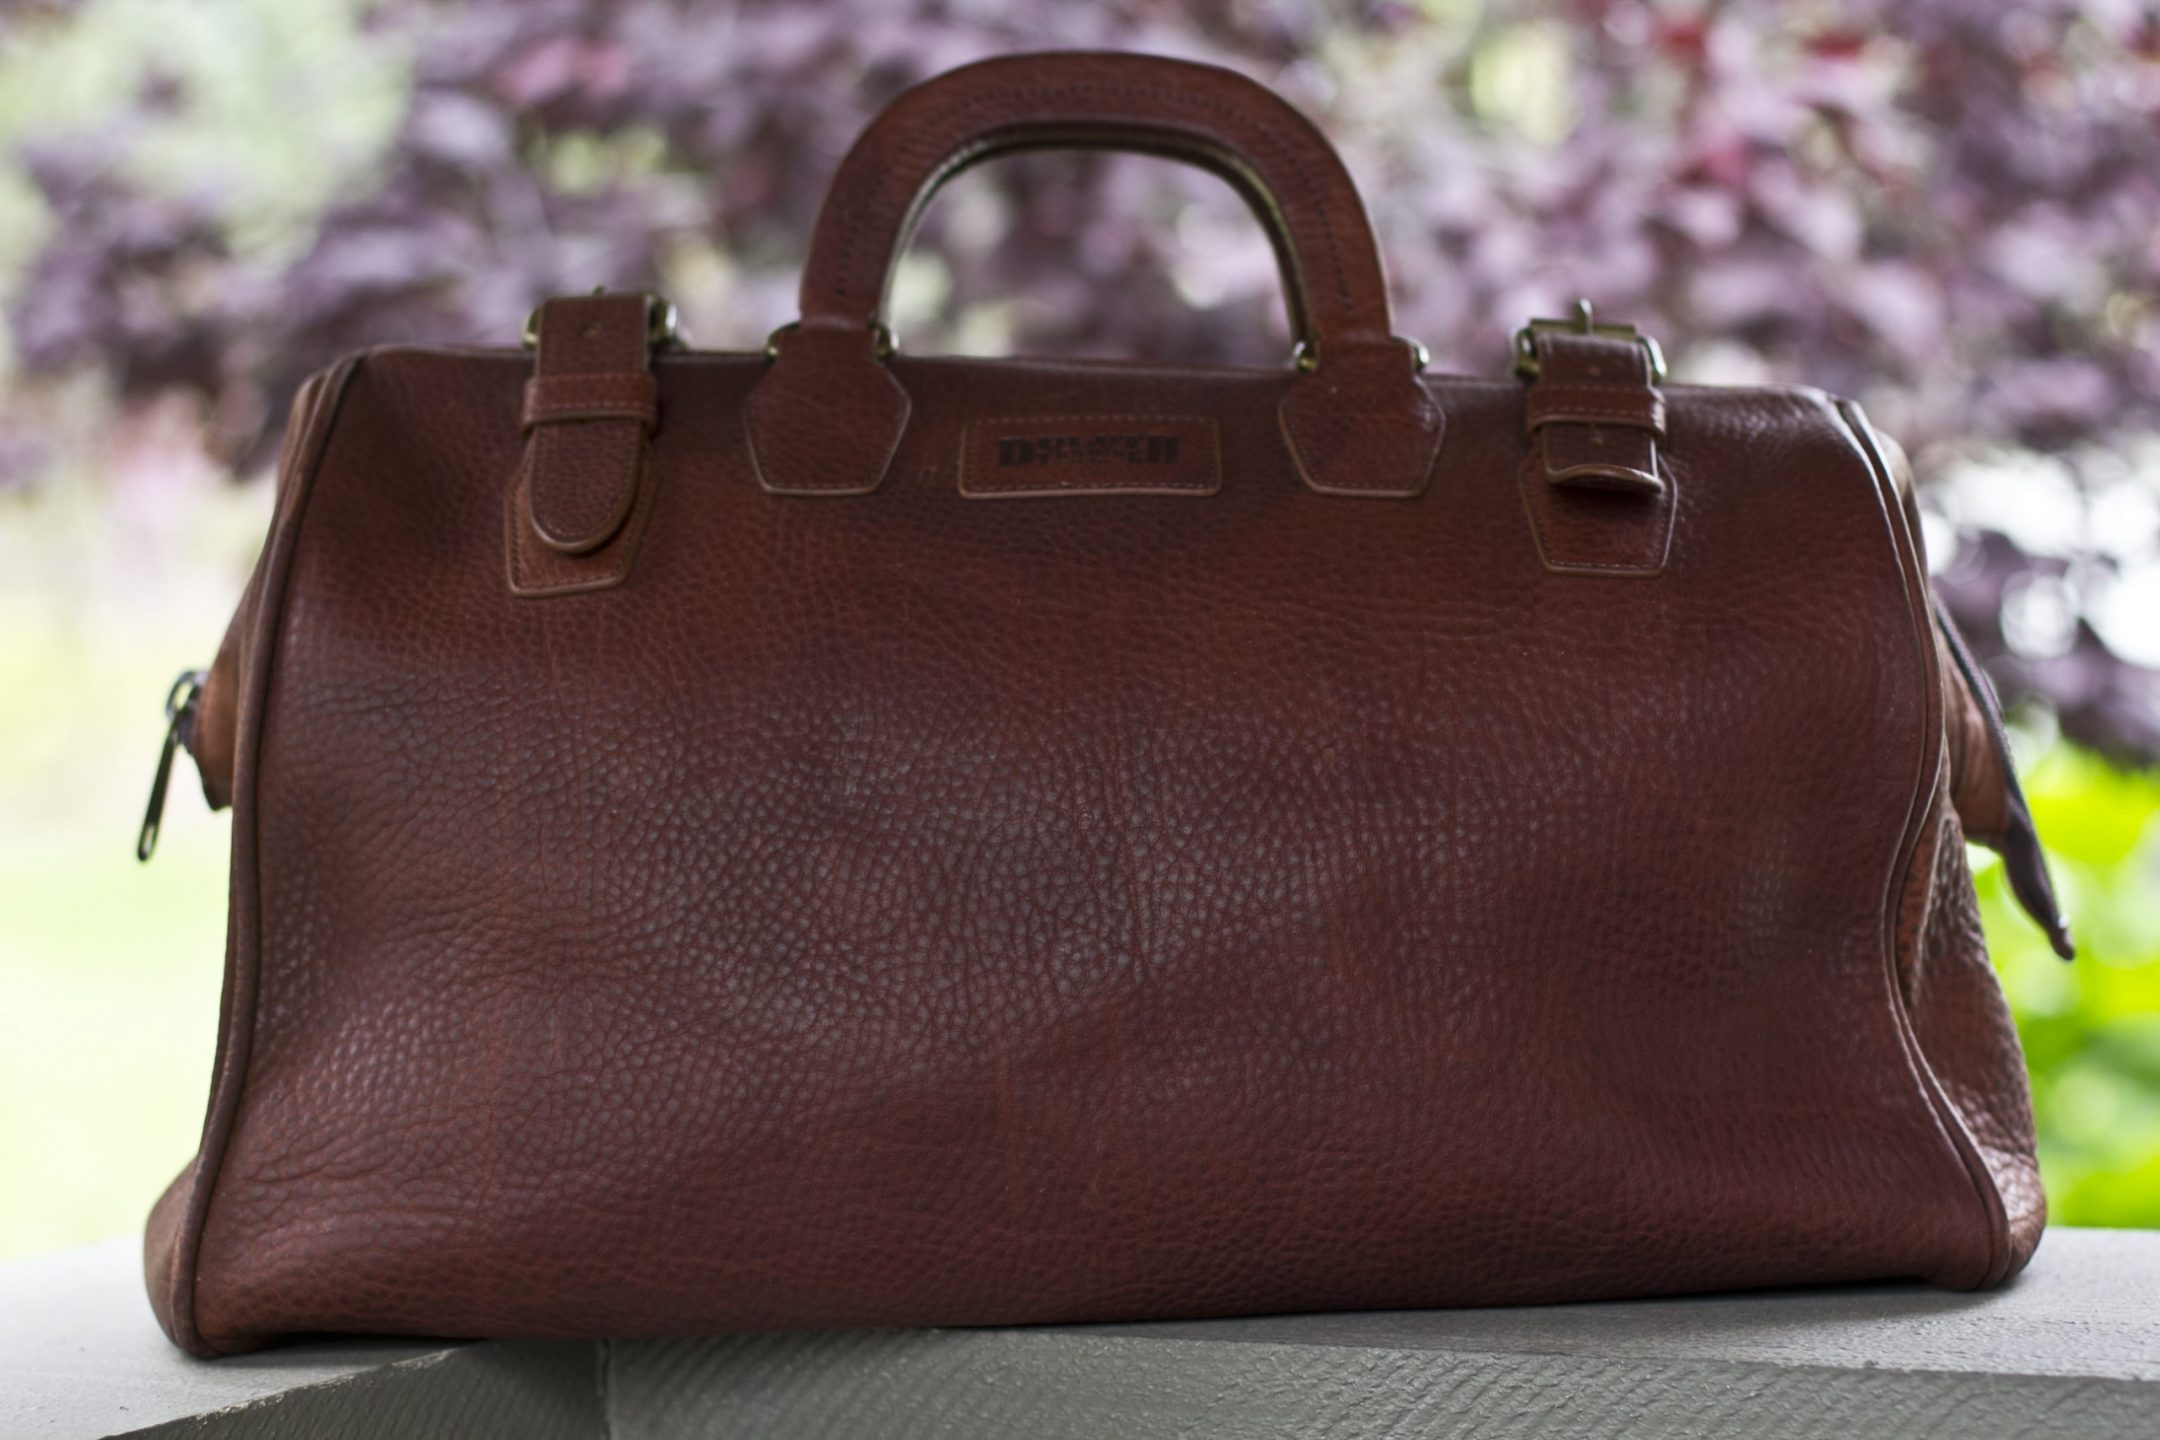 Father's Day gift guide Duluth Trading Co. Awol weekender bag